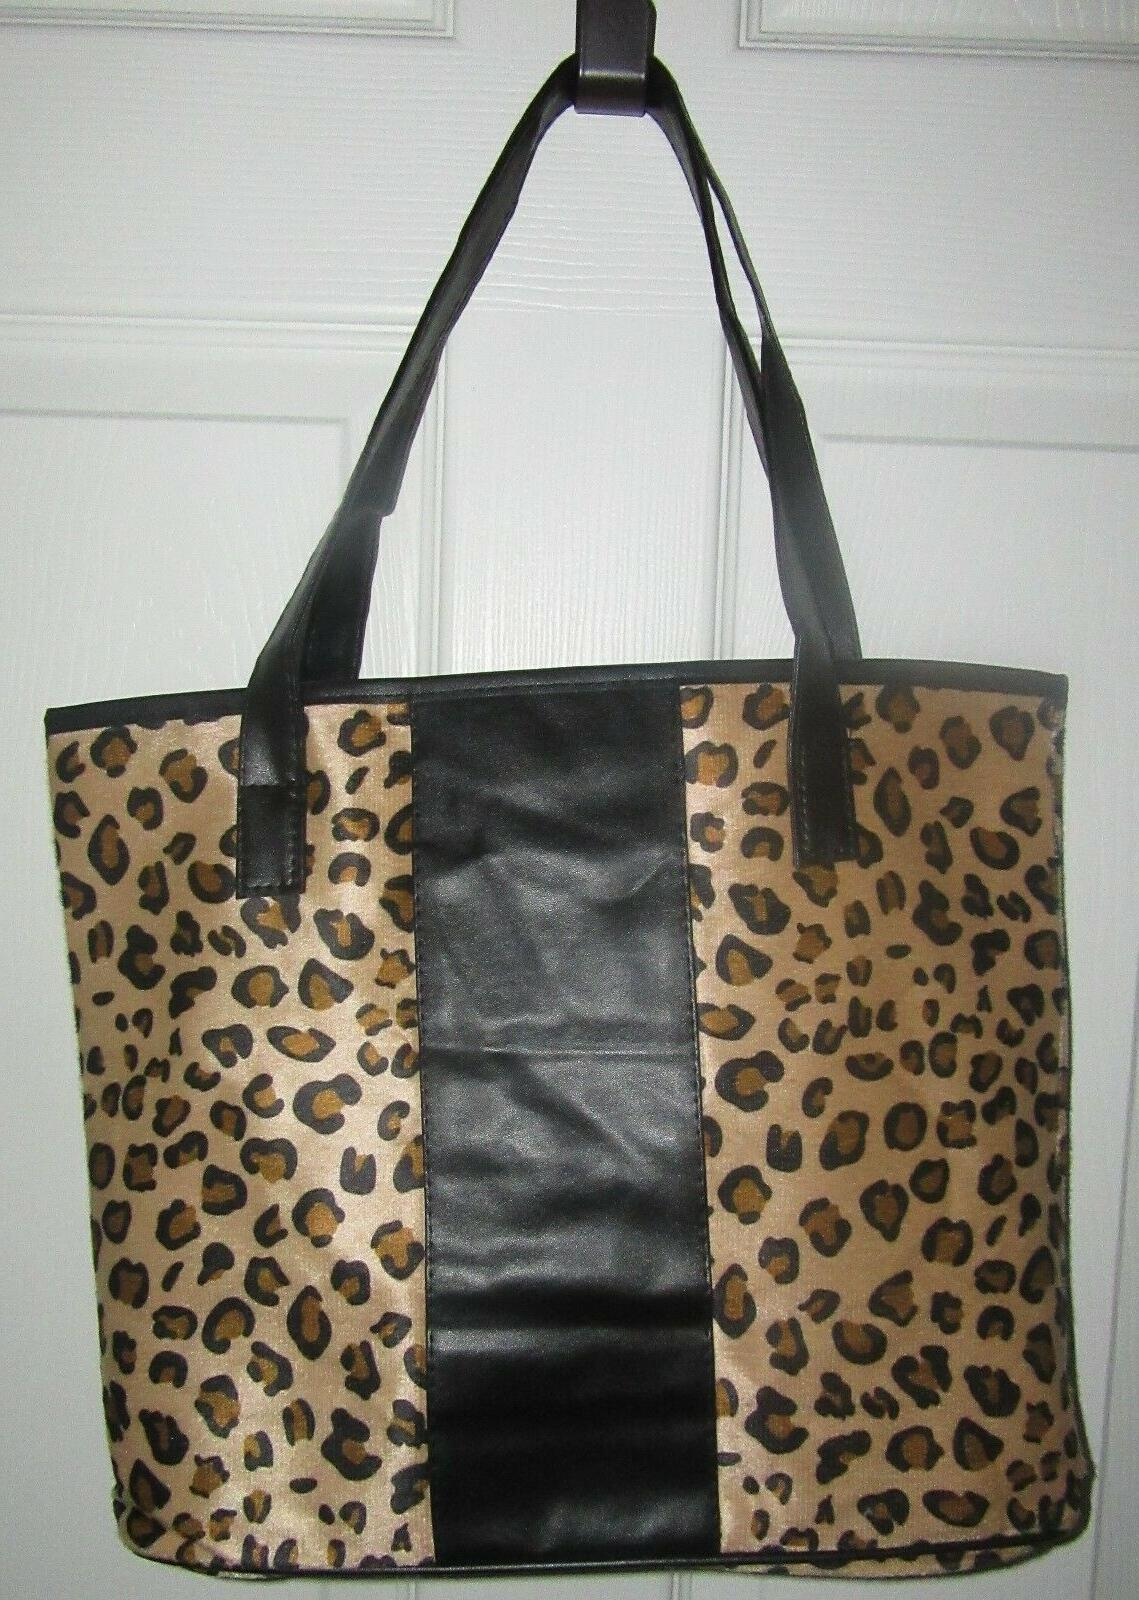 new leopard cheetah animal print lined tote